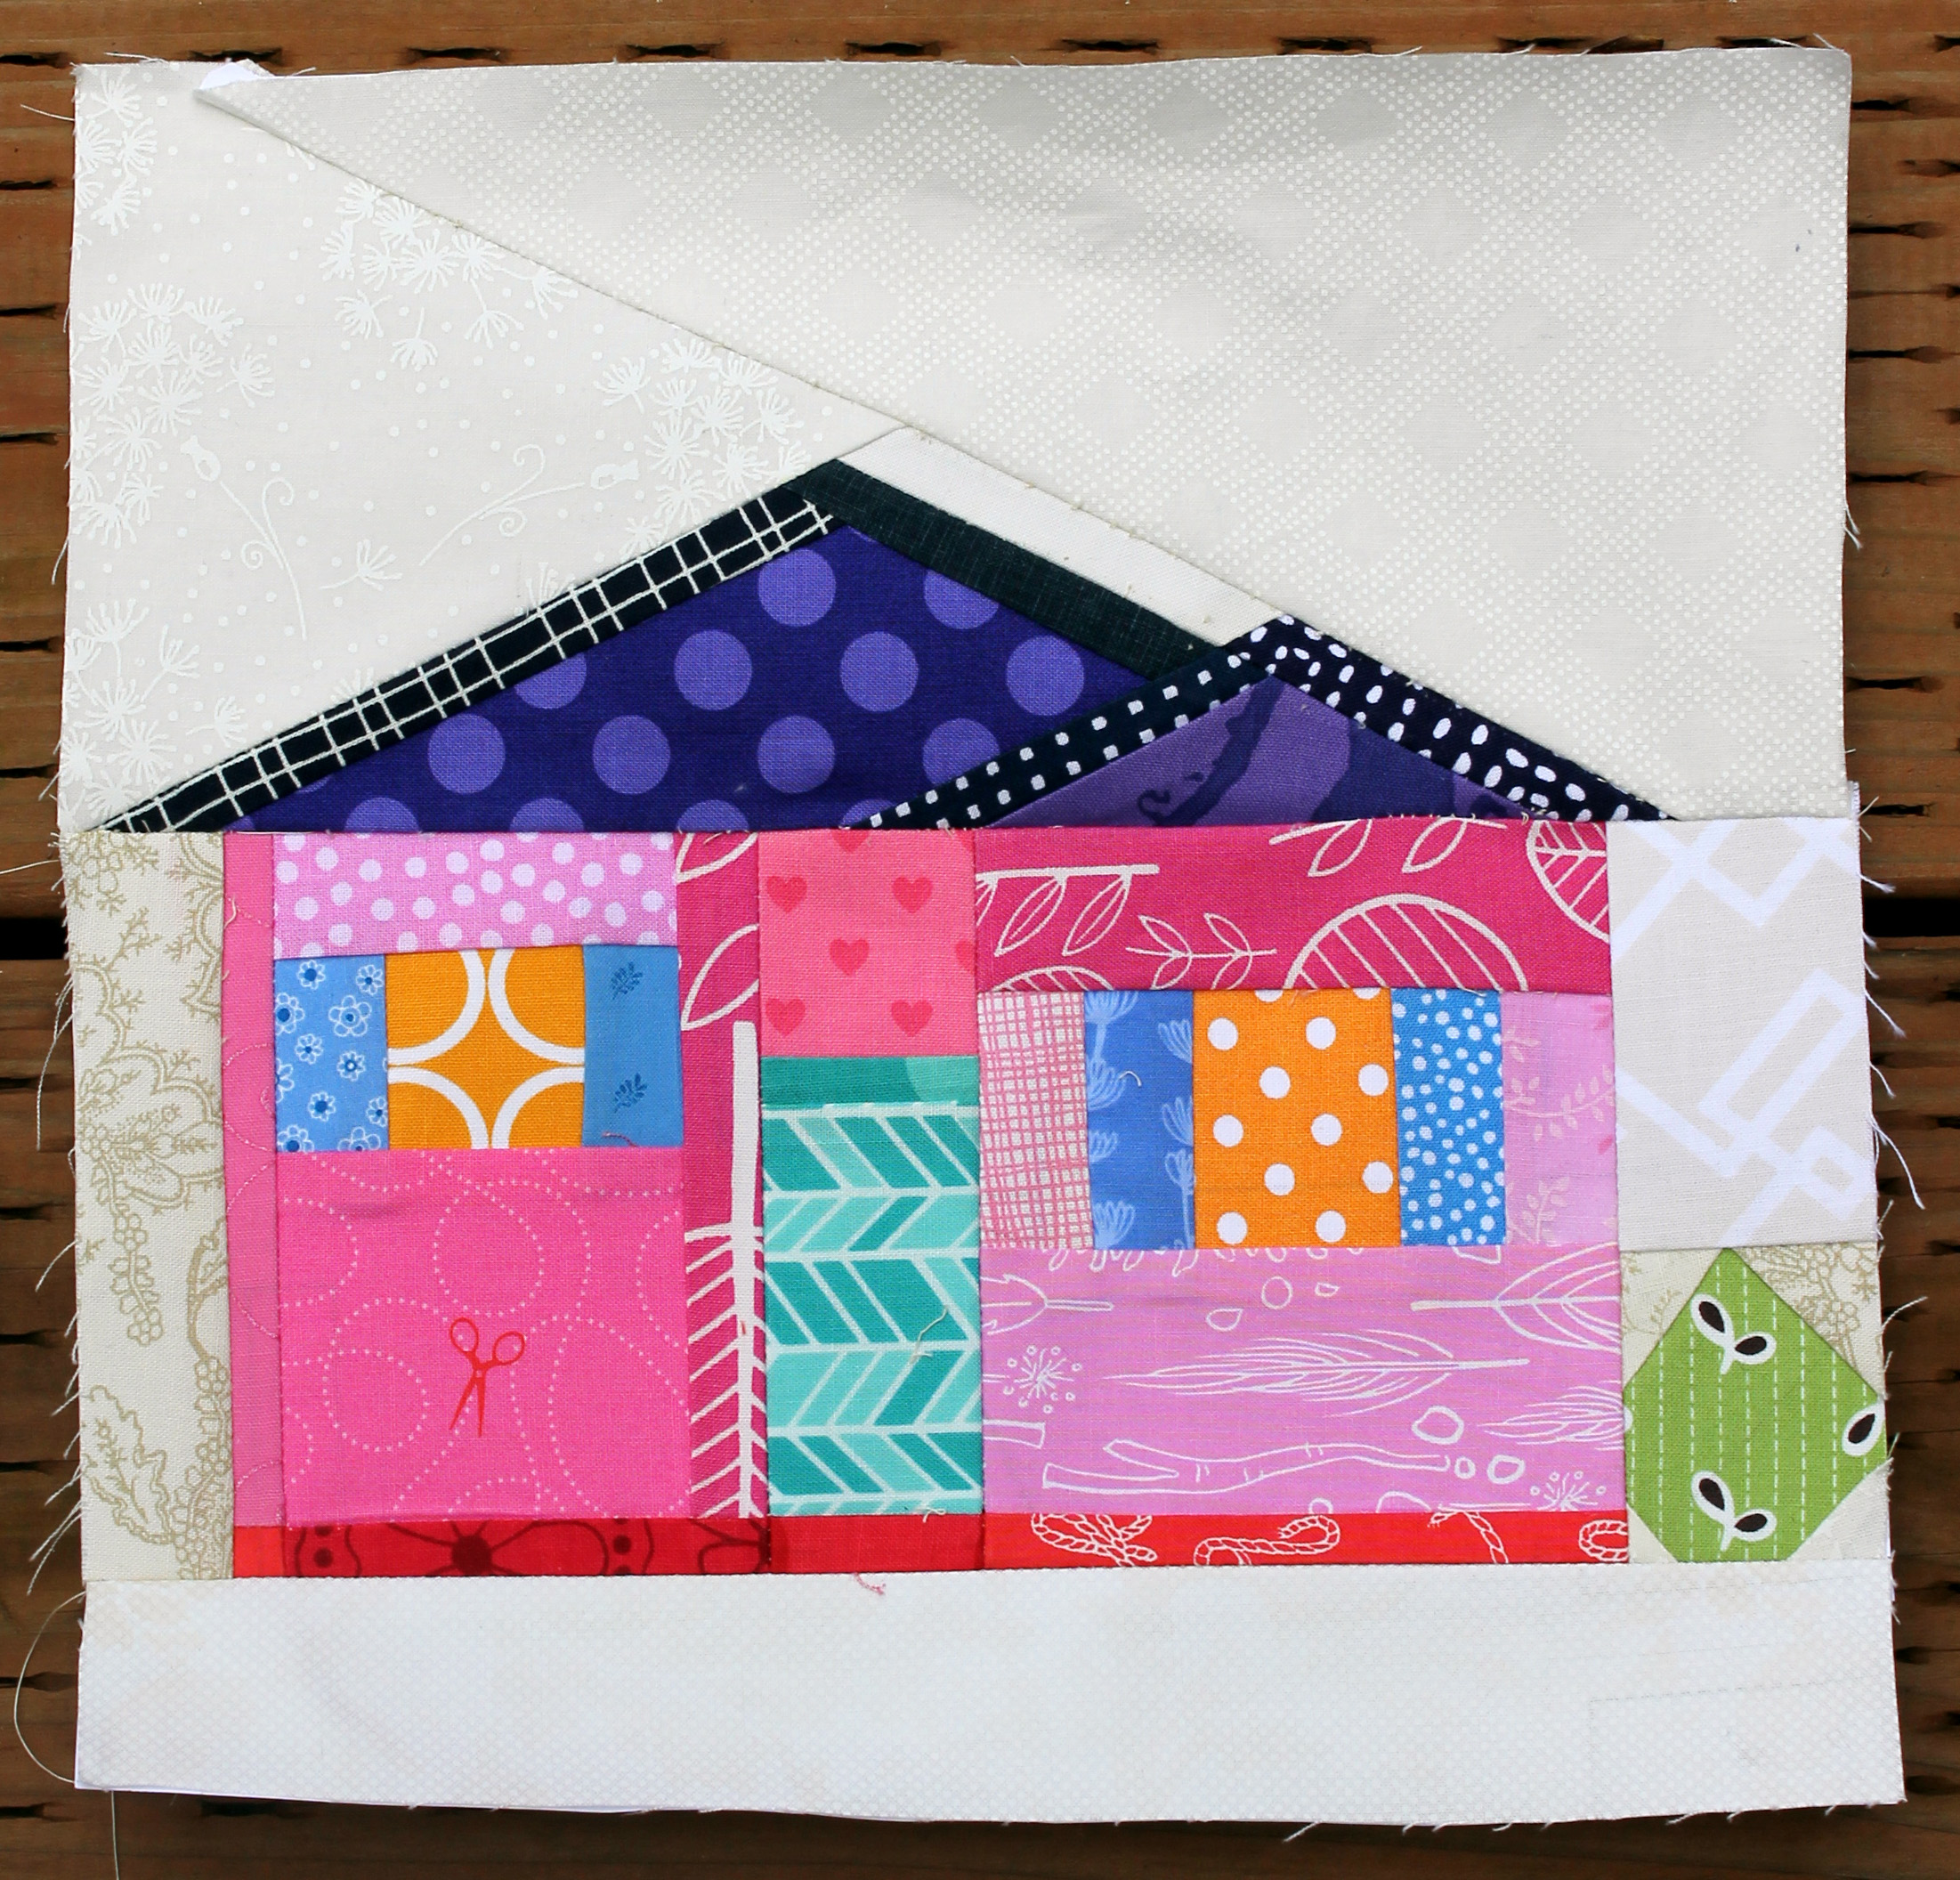 Wq house block 2 for Modern house quilt block